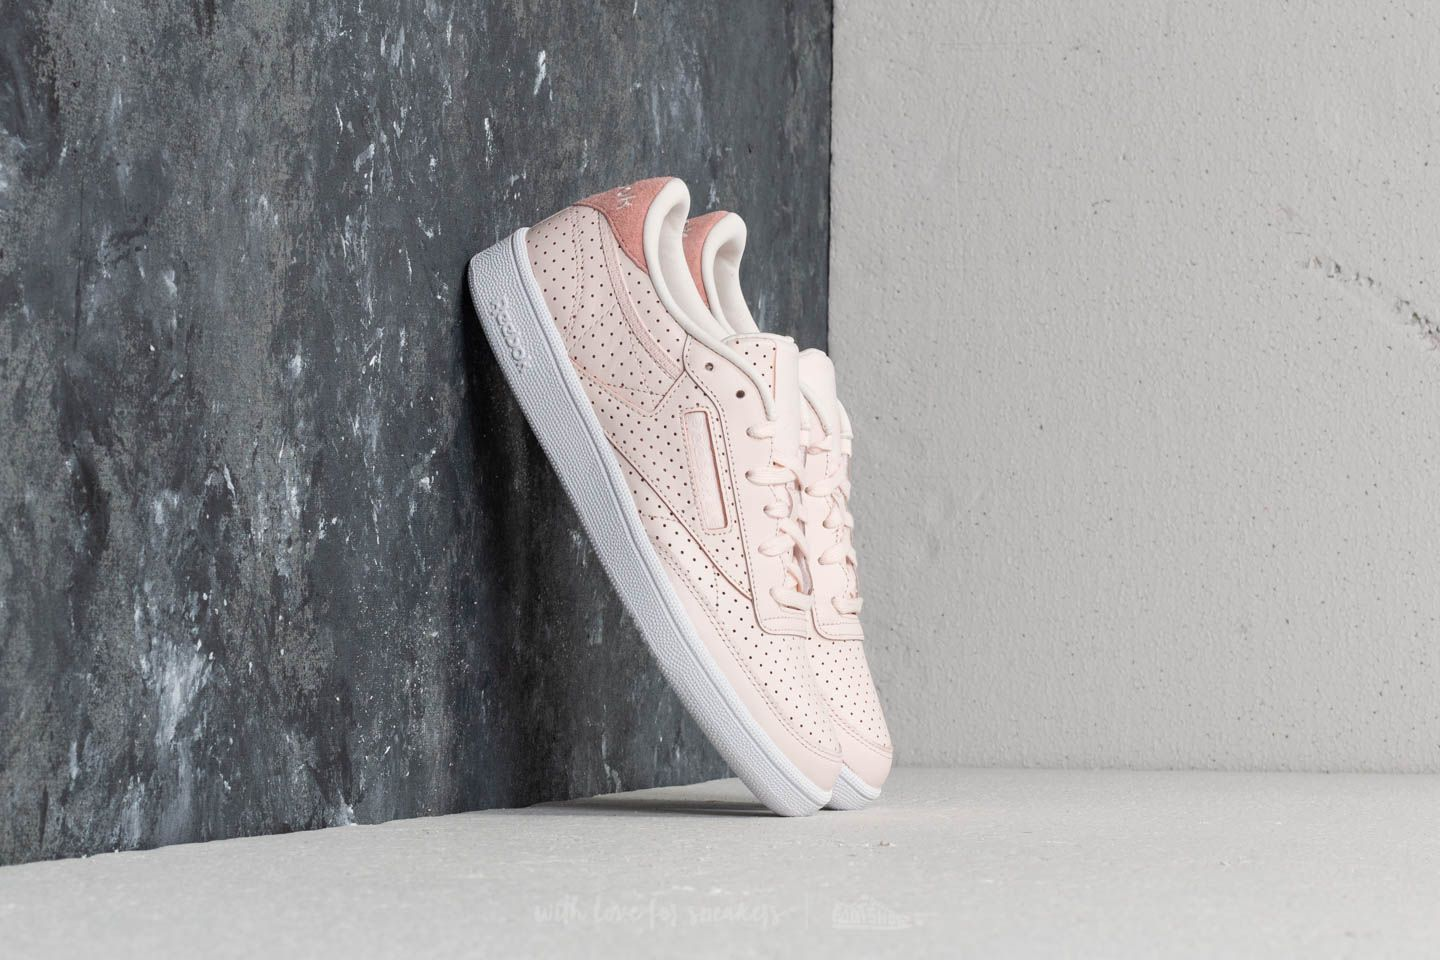 Reebok Club C 85 Popped Perf Pale Pink/ Chalk Pink/ White